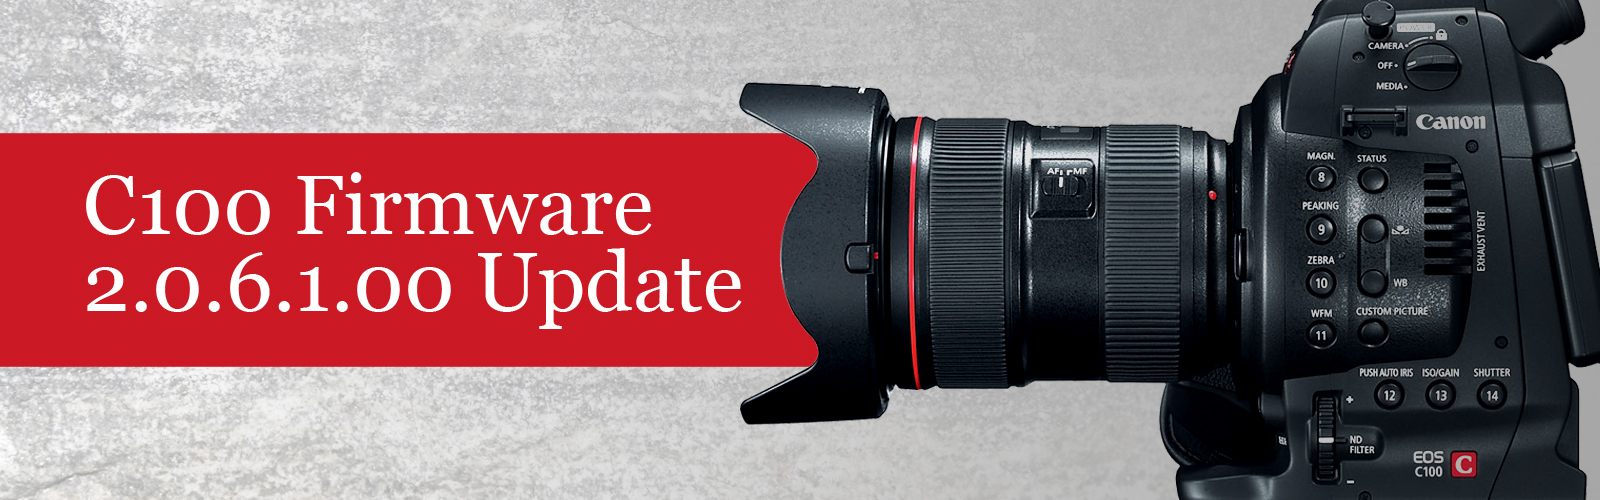 Canon eos c100, c300, and c500 camcorders receive new firmware.